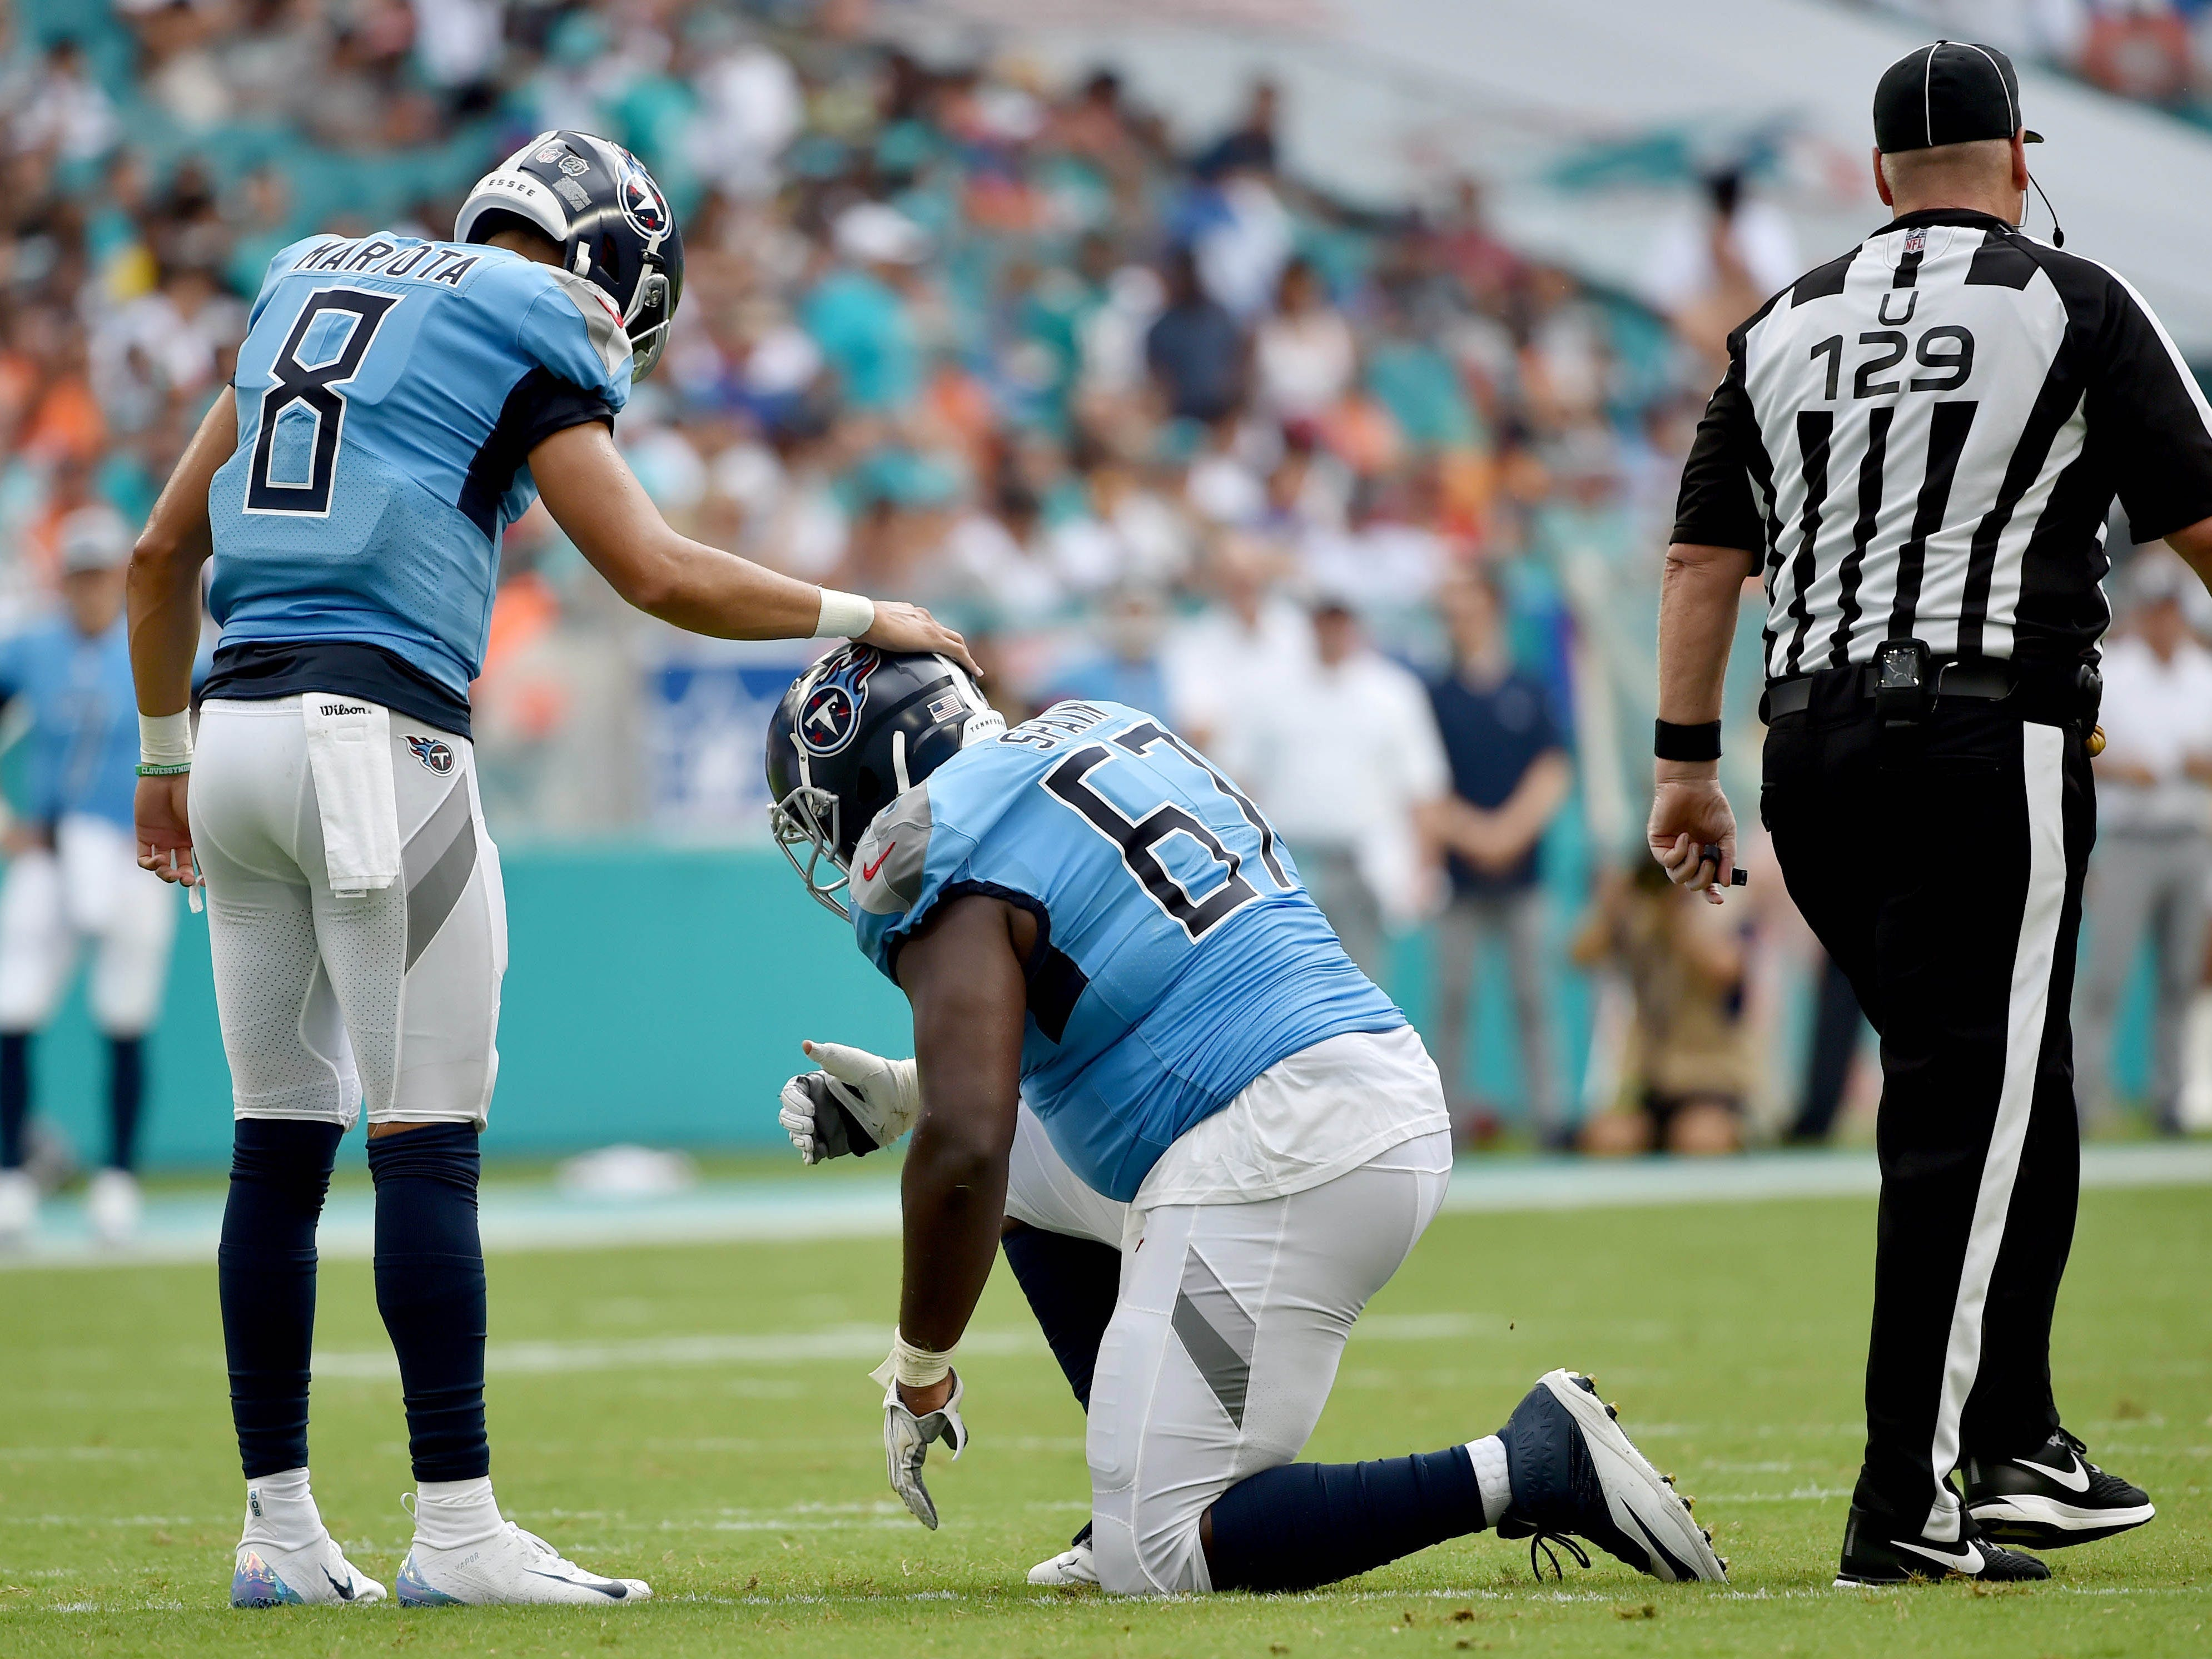 Tennessee Titans quarterback Marcus Mariota checks on the condition of Titans offensive guard Quinton Spain during the first half against the Miami Dolphins at Hard Rock Stadium.